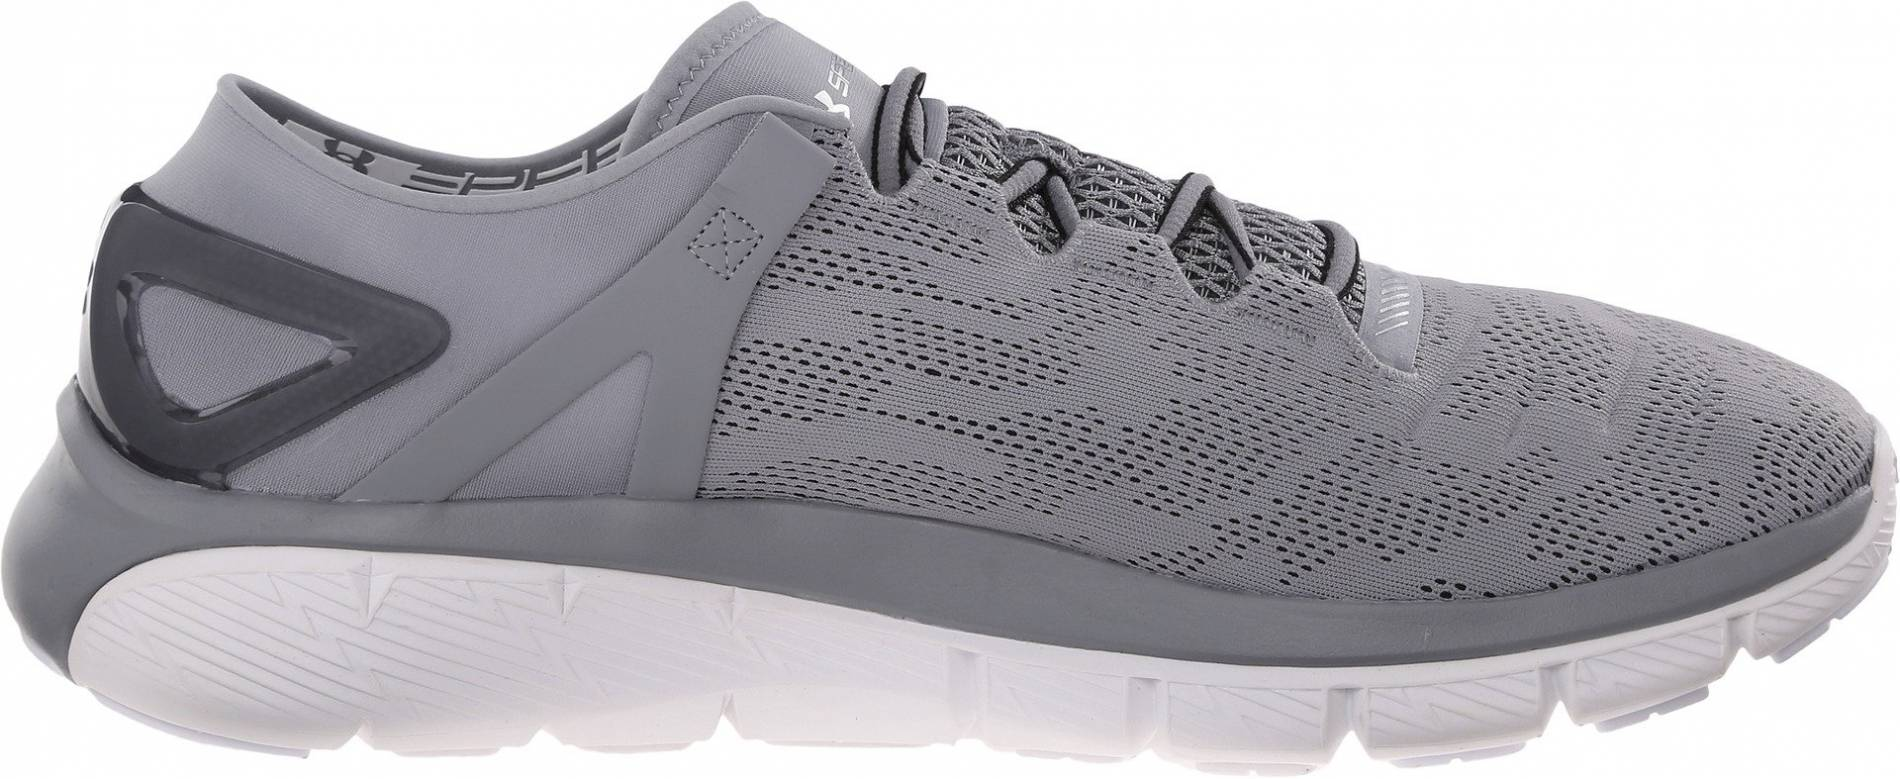 Review of Under Armour SpeedForm Fortis